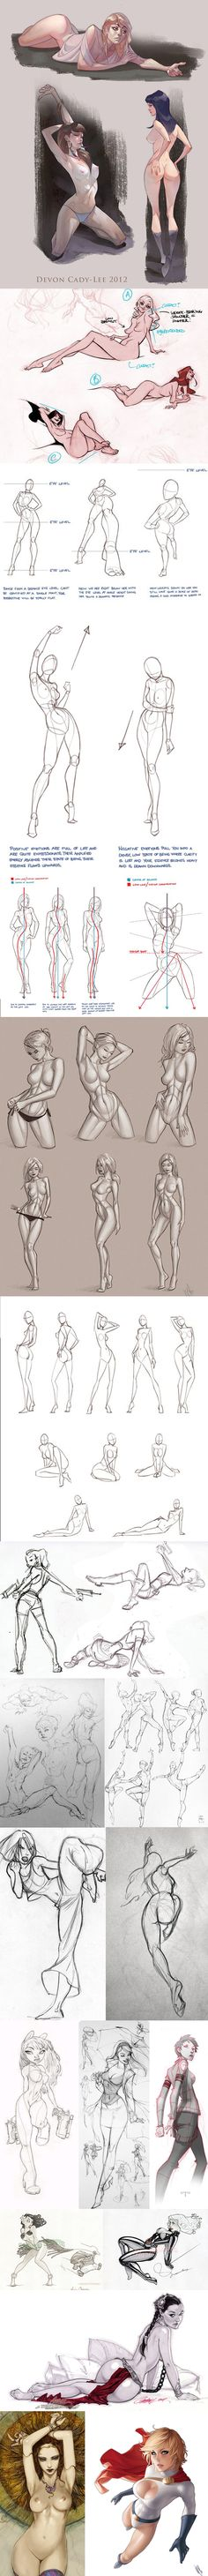 great pose info - female Body study - anatomical reference - woman in different positions - drawing reference Drawing Techniques, Drawing Tips, Drawing Reference, Drawing Sketches, Painting & Drawing, Art Drawings, Sketching, Anatomy Reference, Body Drawing